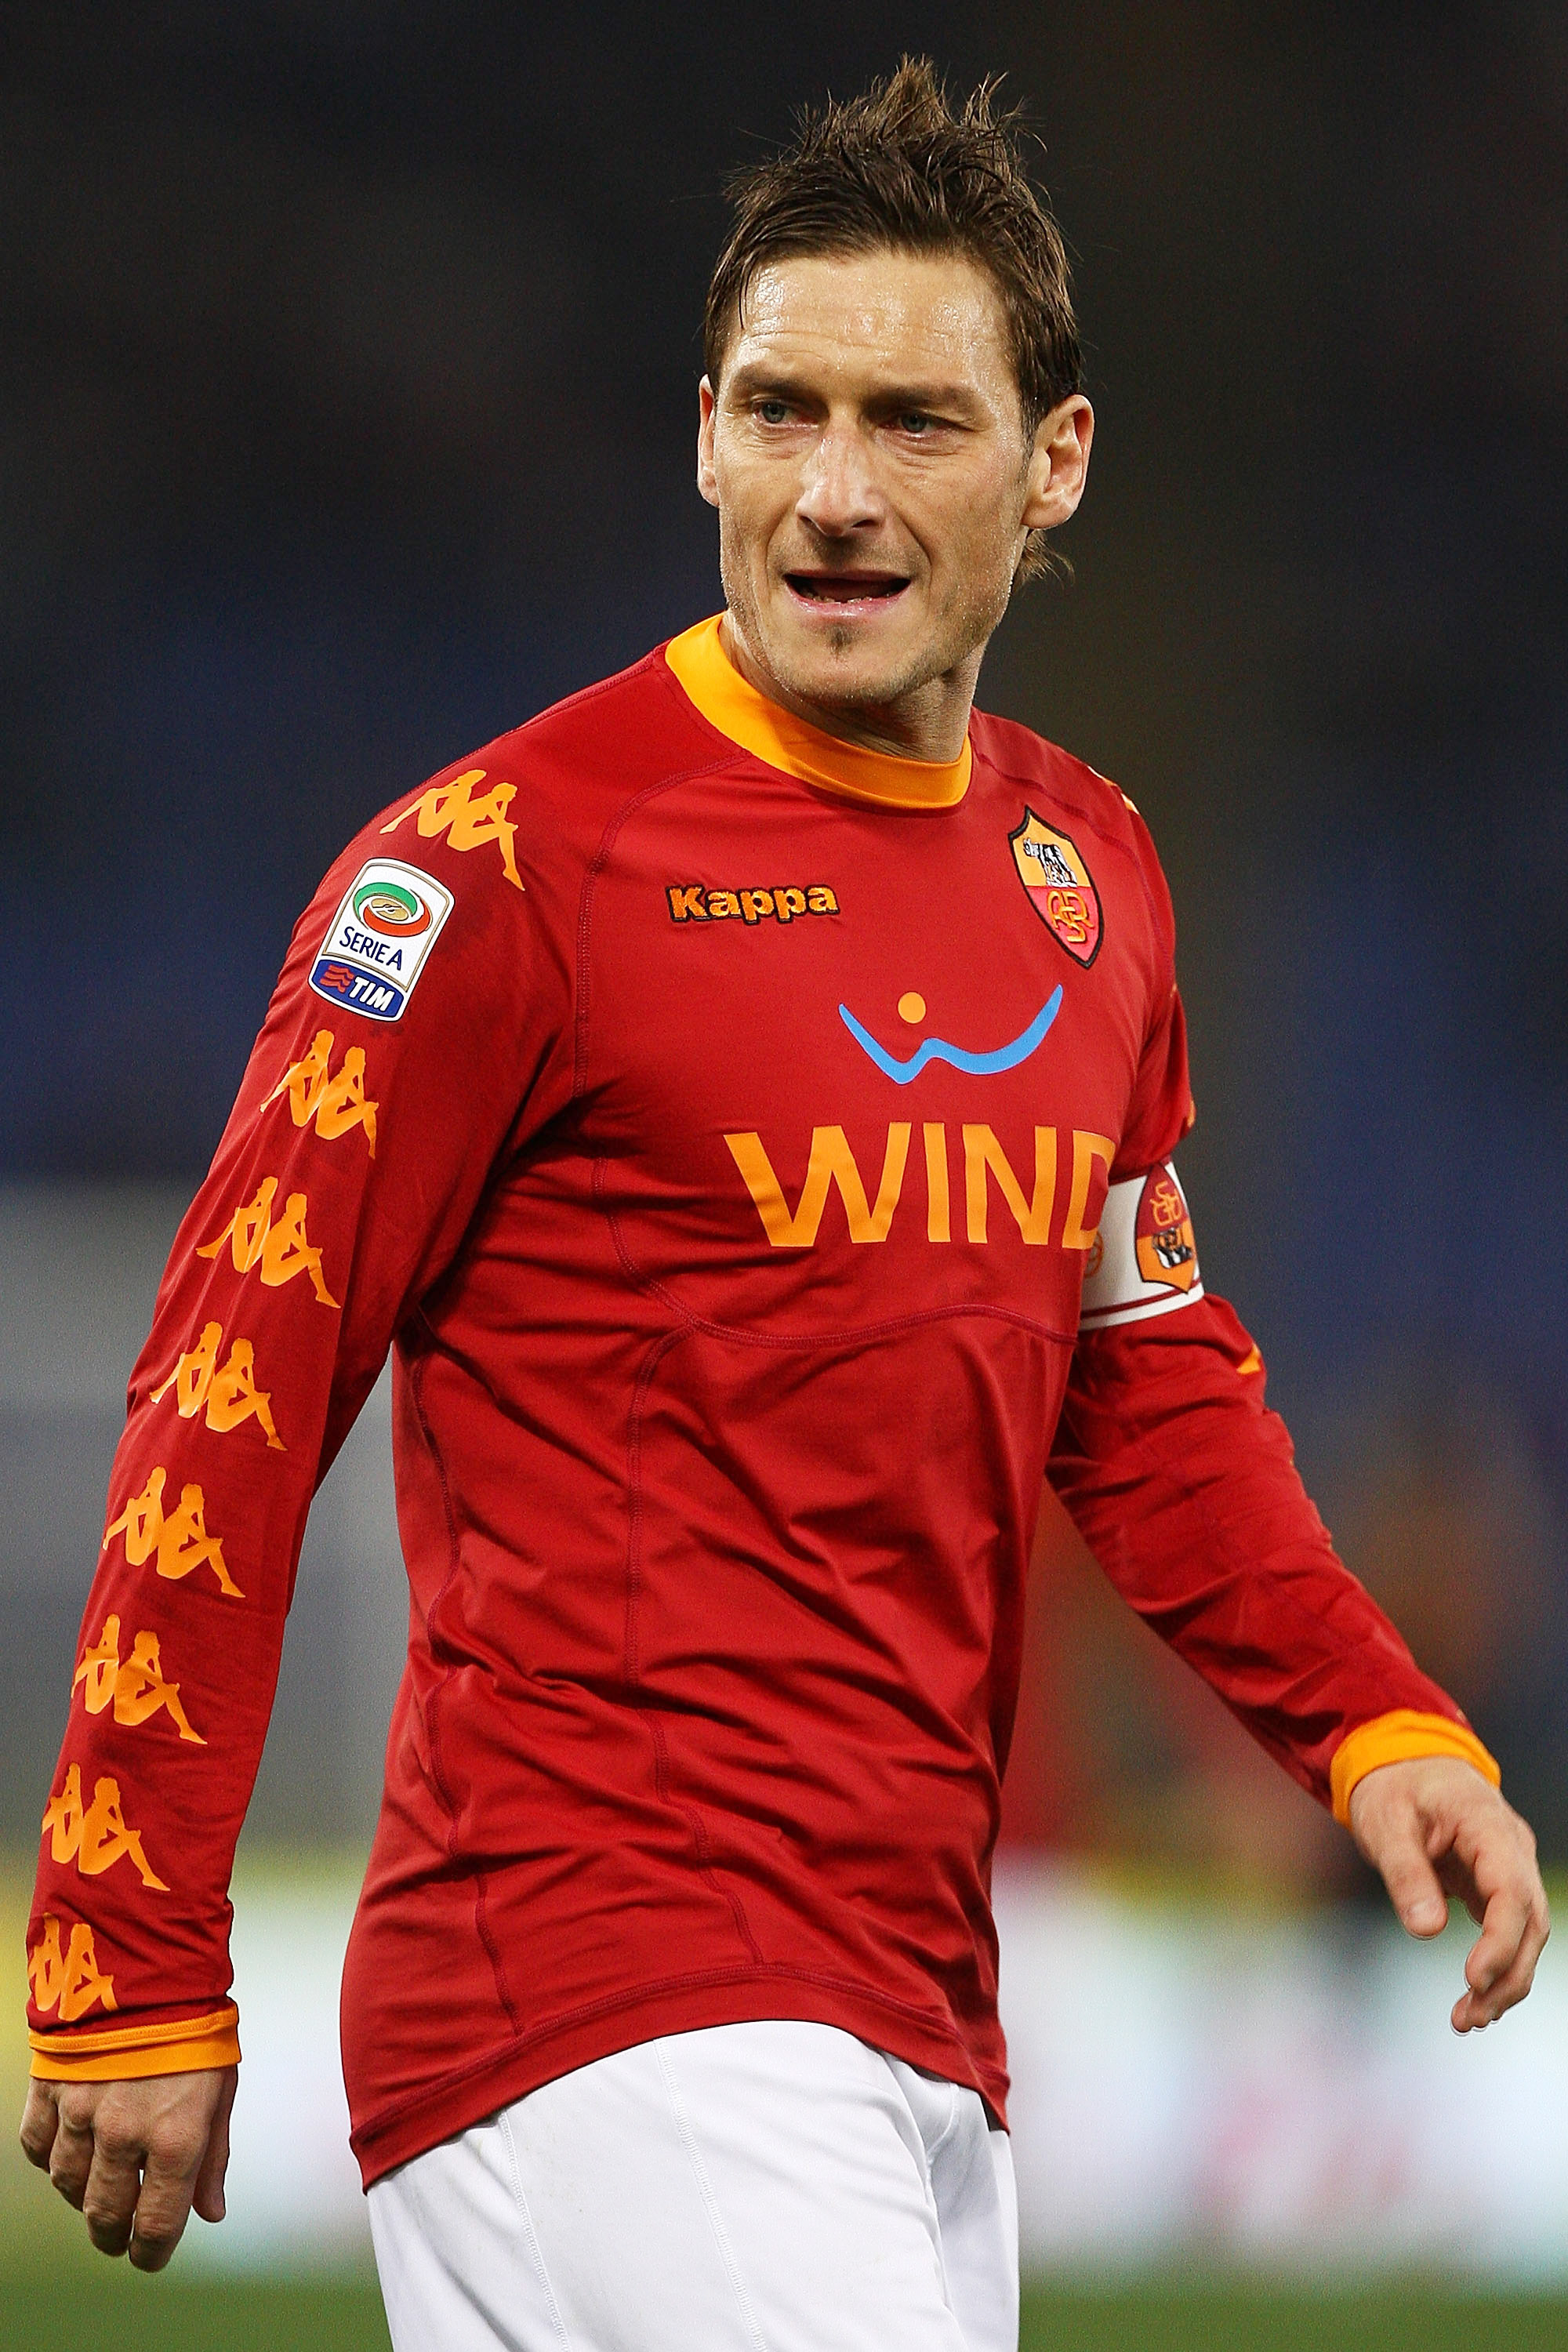 ROME, ITALY - FEBRUARY 02:  Francesco Totti of AS Roma looks on during the Serie A match between AS Roma and Brescia Calcio at Stadio Olimpico on February 2, 2011 in Rome, Italy.  (Photo by Paolo Bruno/Getty Images)